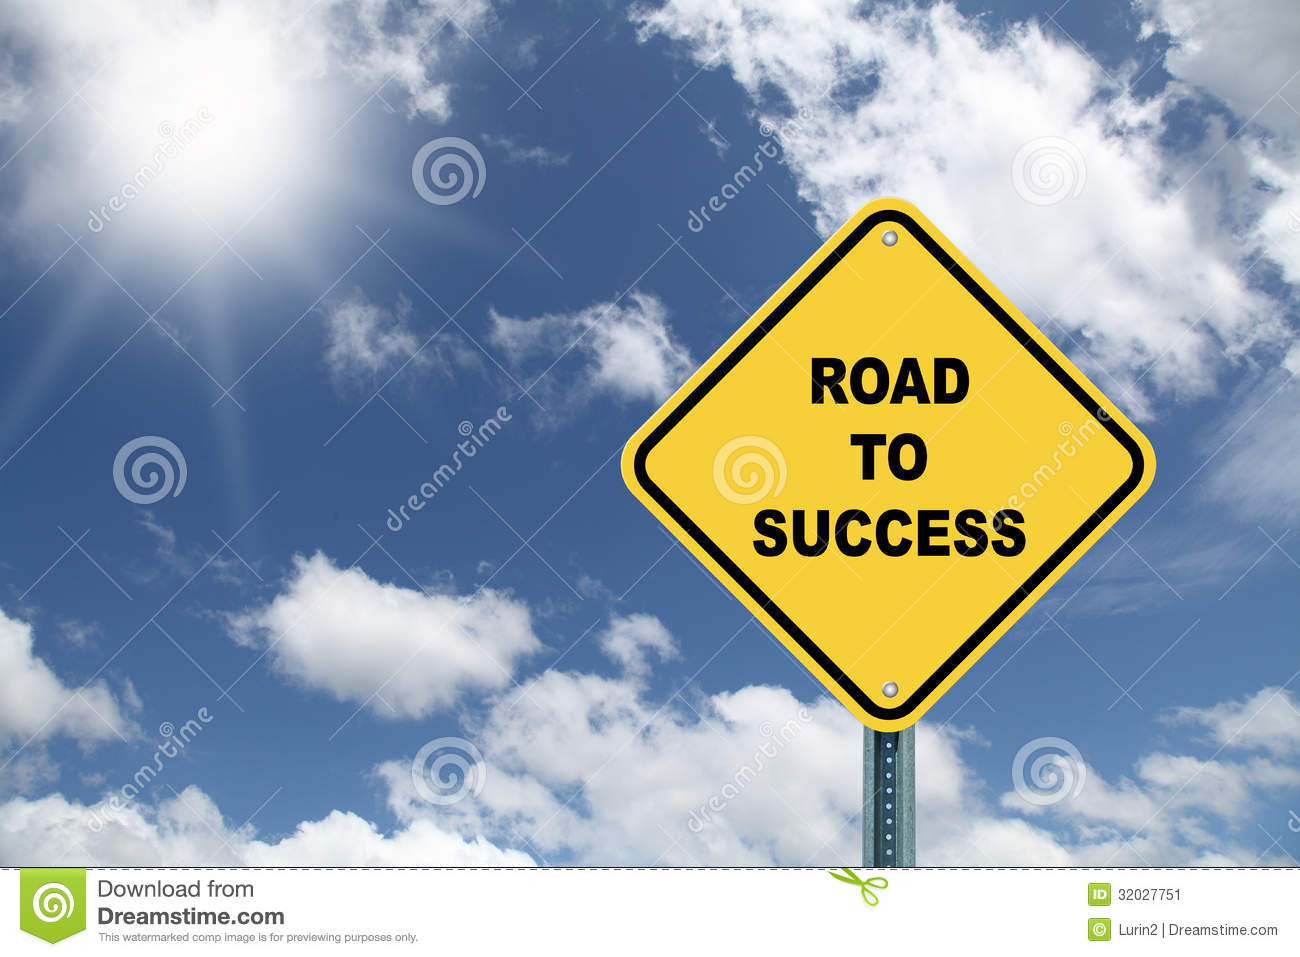 Road To Success Sign Stock Image - Image: 32027751